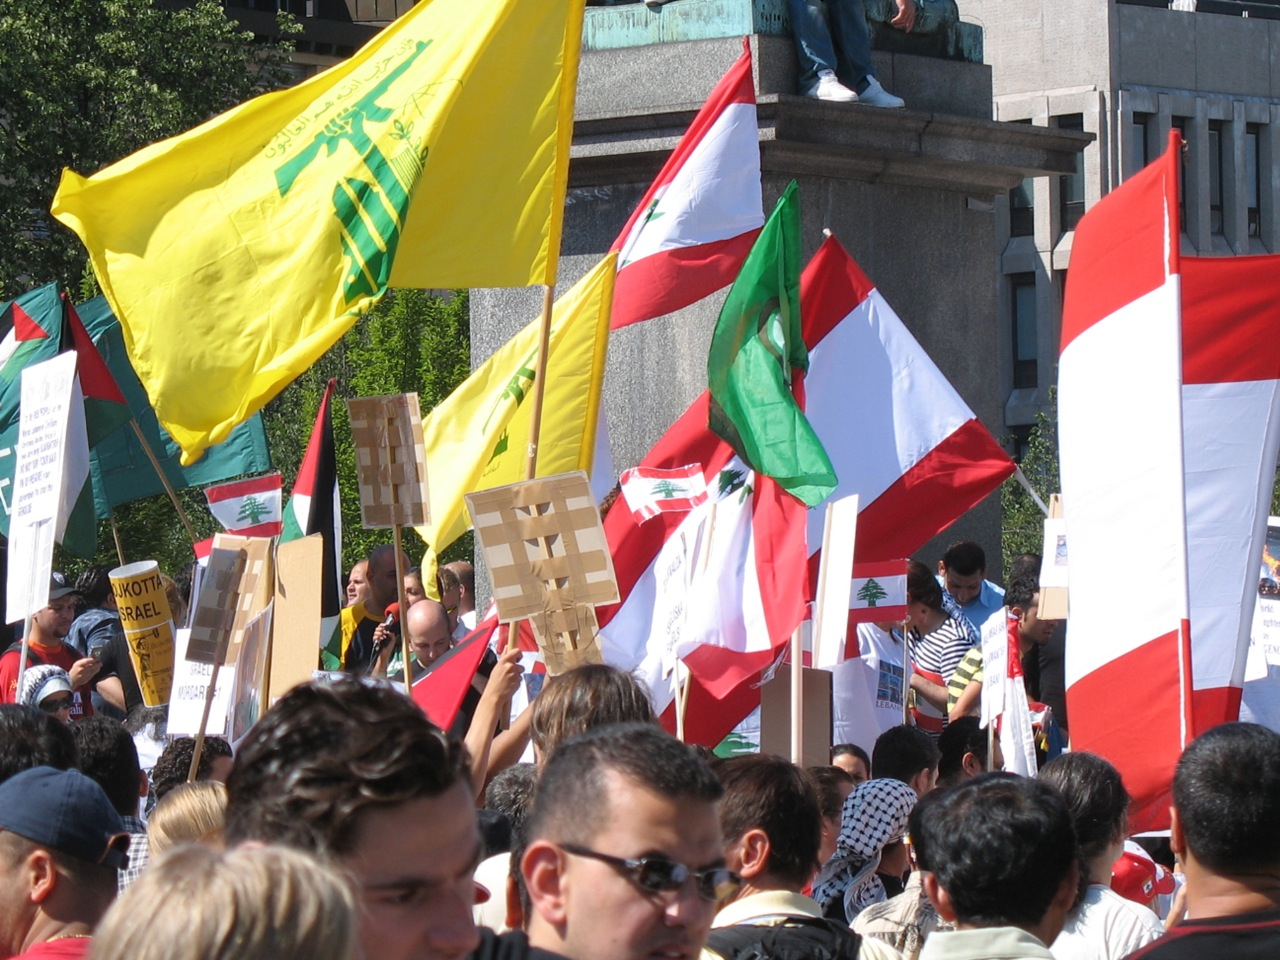 A pro palestistine, pro lebanon and not slightly pro hezbollah rally we stumbled on to at kungsträdgården. About 1500-2000 people where there according to the news. After this they marched on the US embassy.